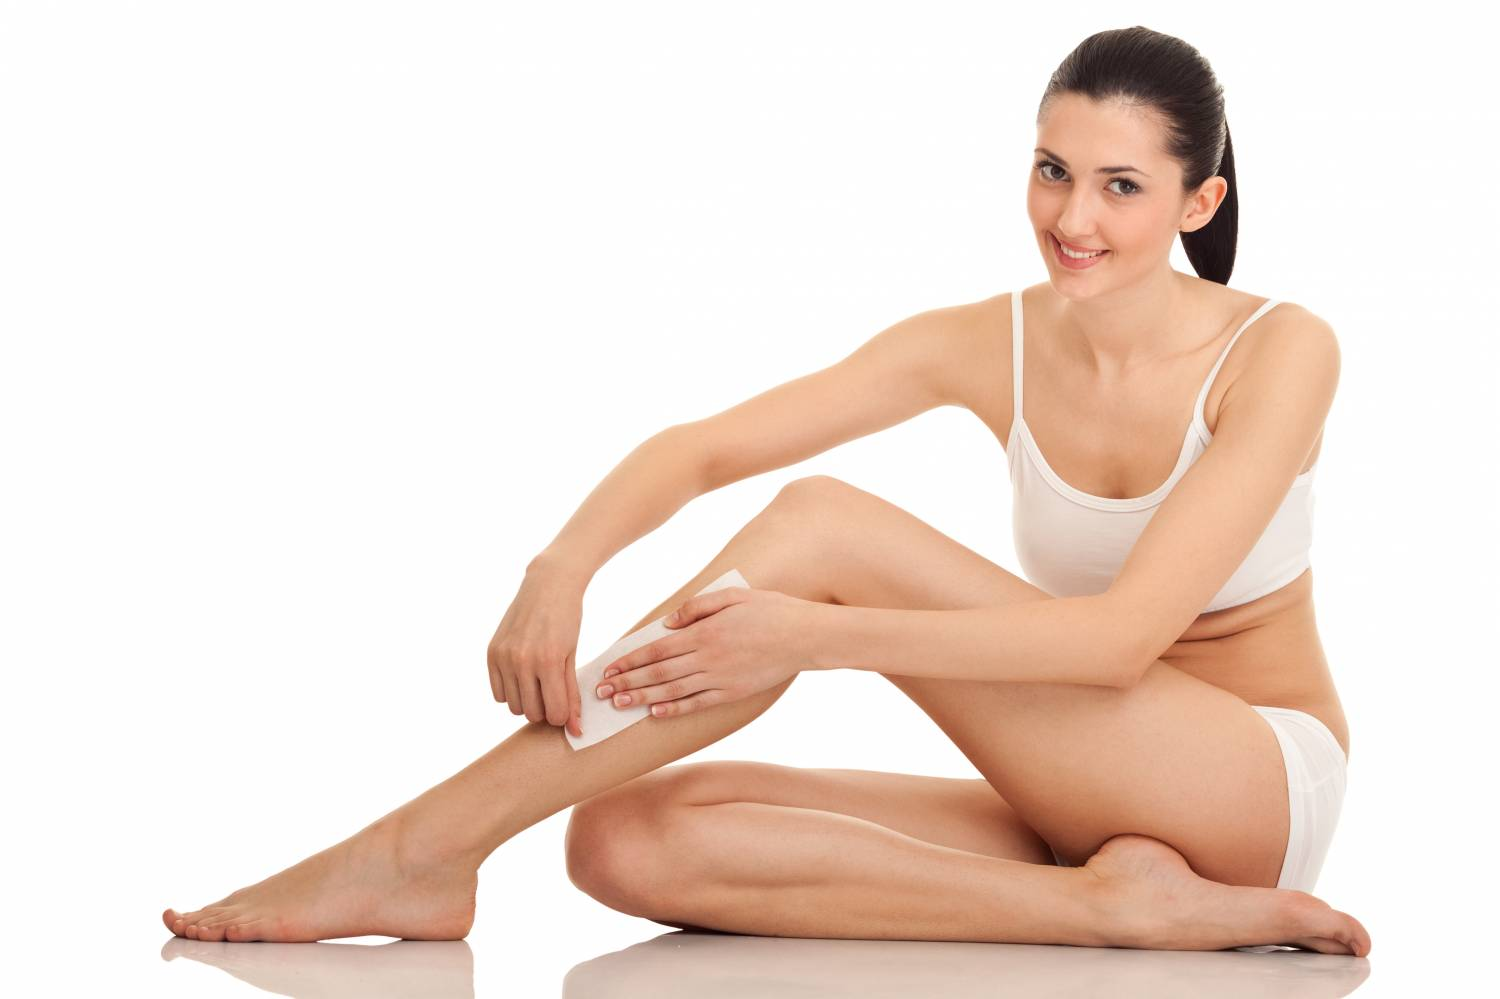 Image result for painless waxing